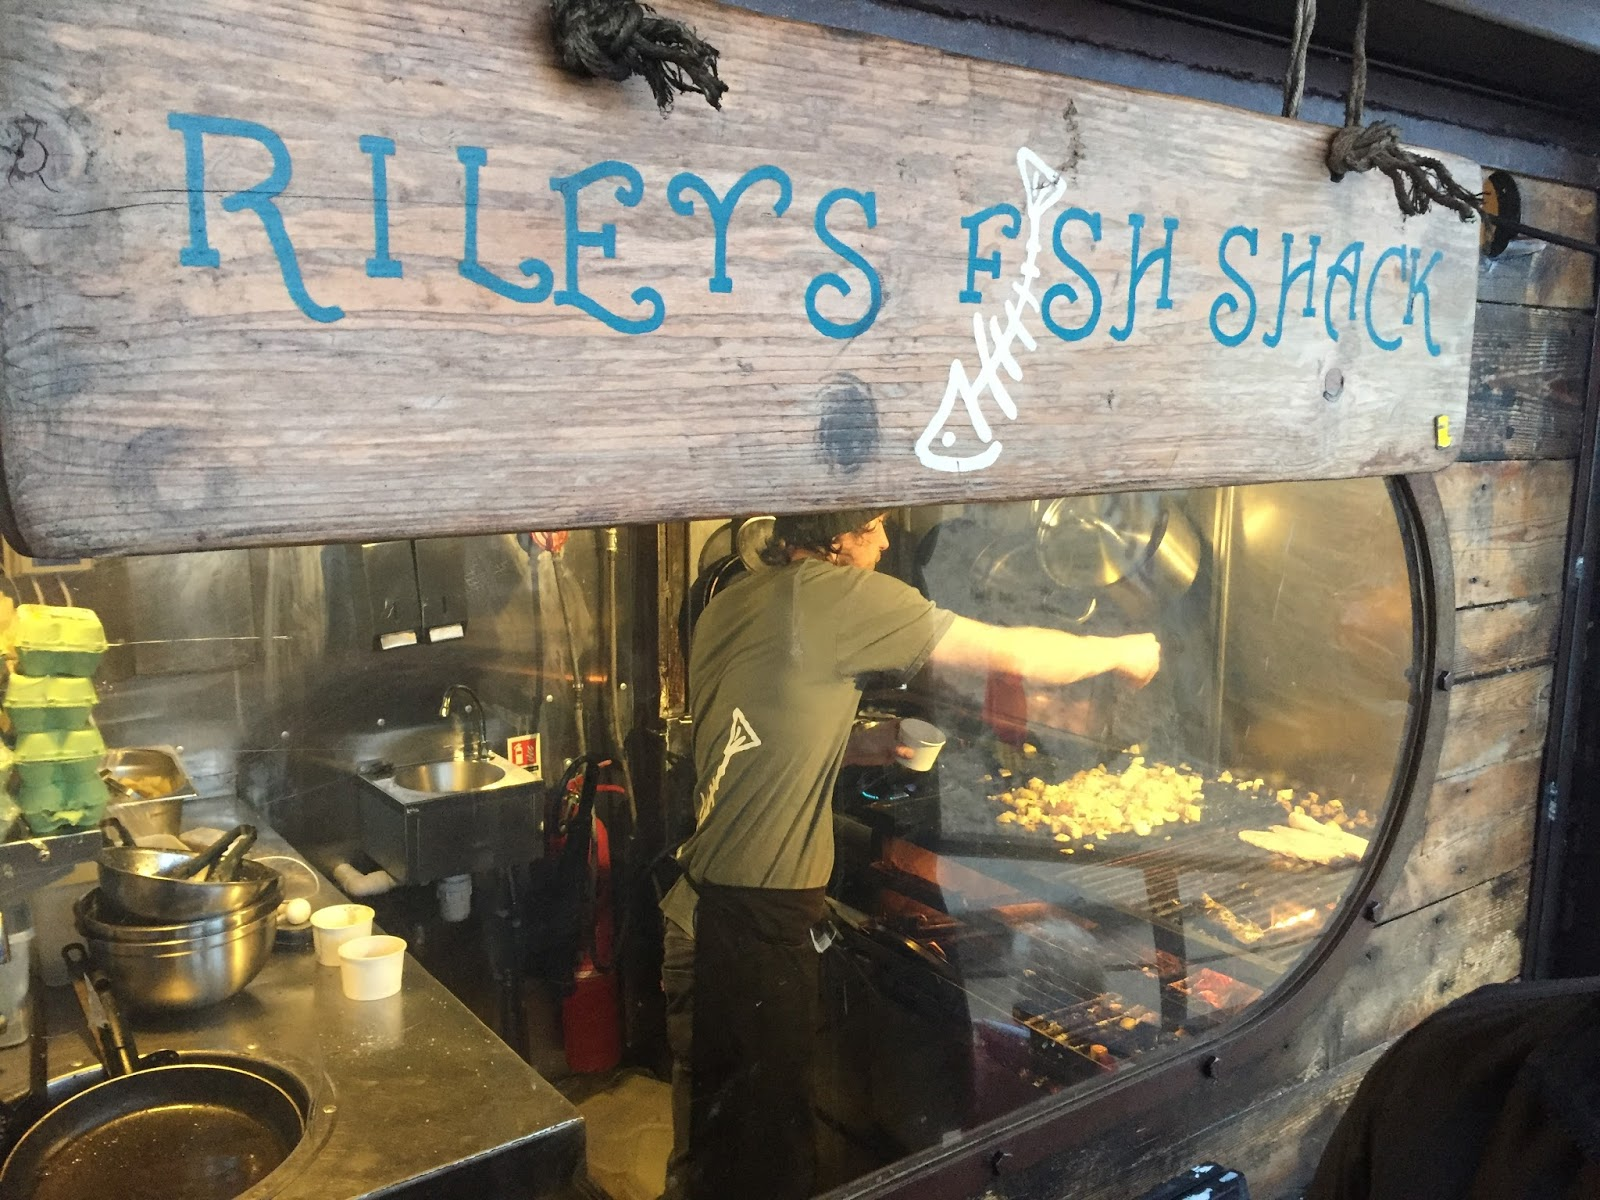 Weekend in Tynemouth, Newcastle, Rileys fish shack